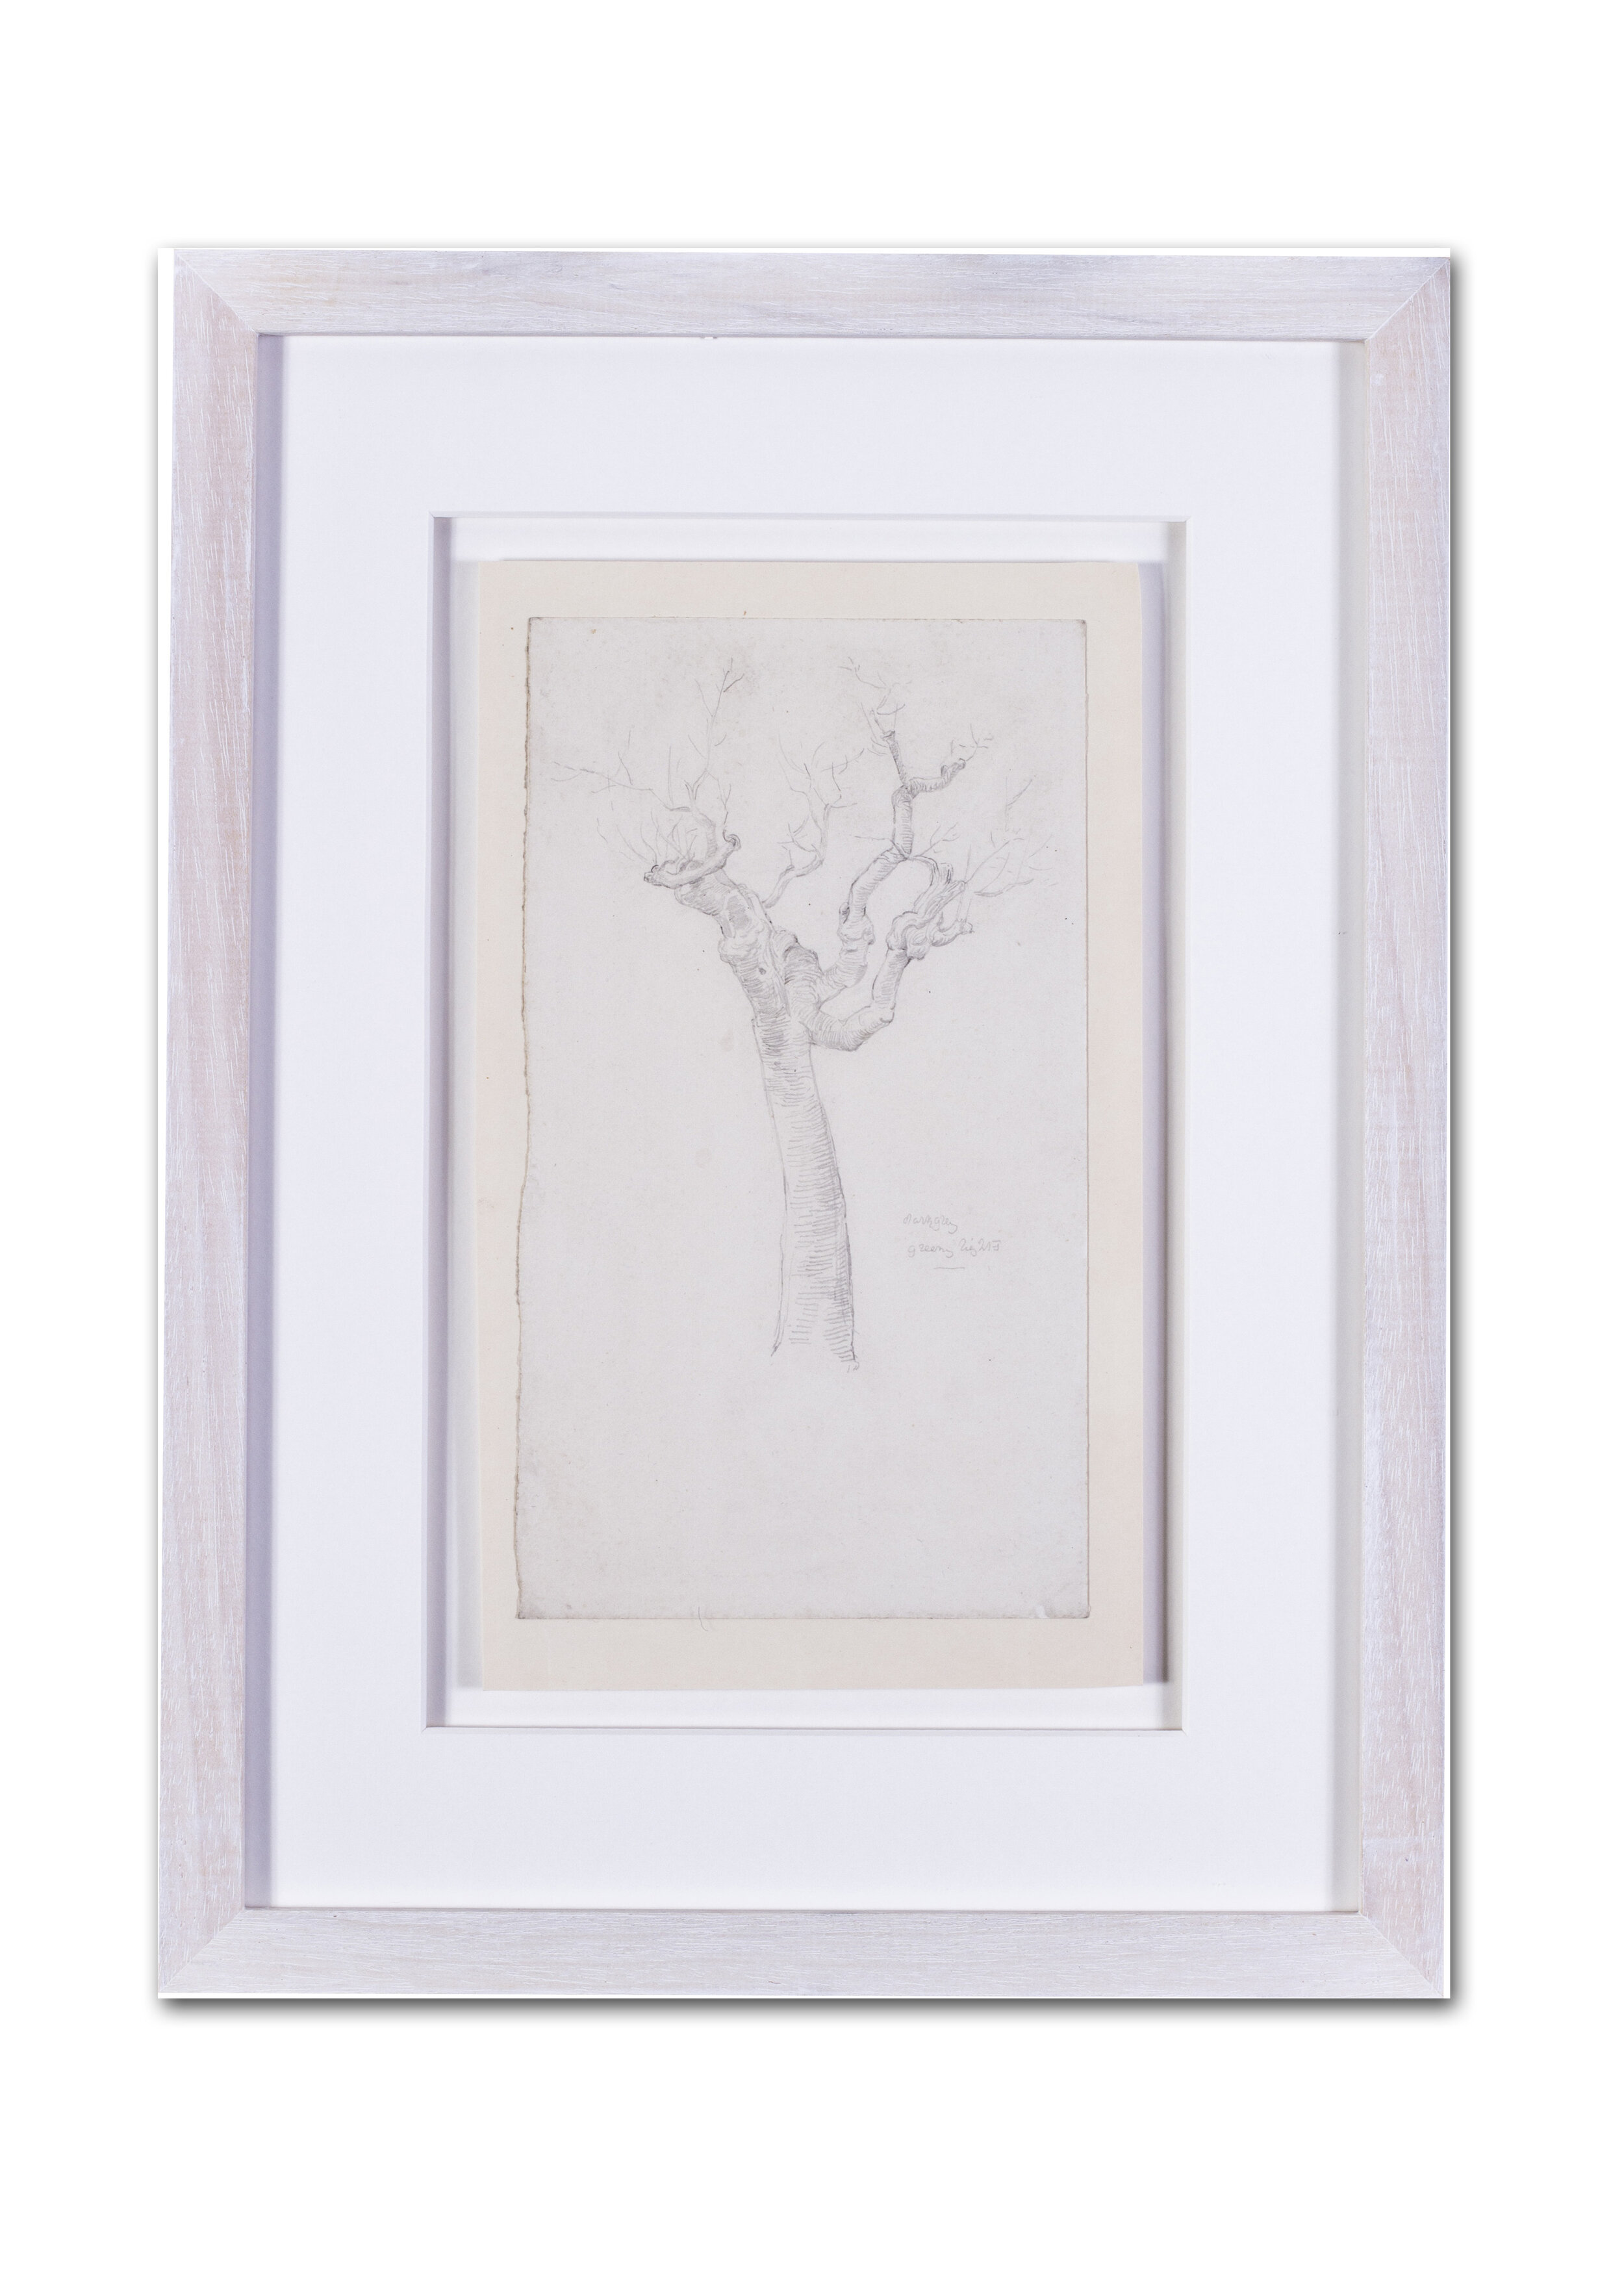 Evelyn de Morgan    A twisted tree study    Price: £900